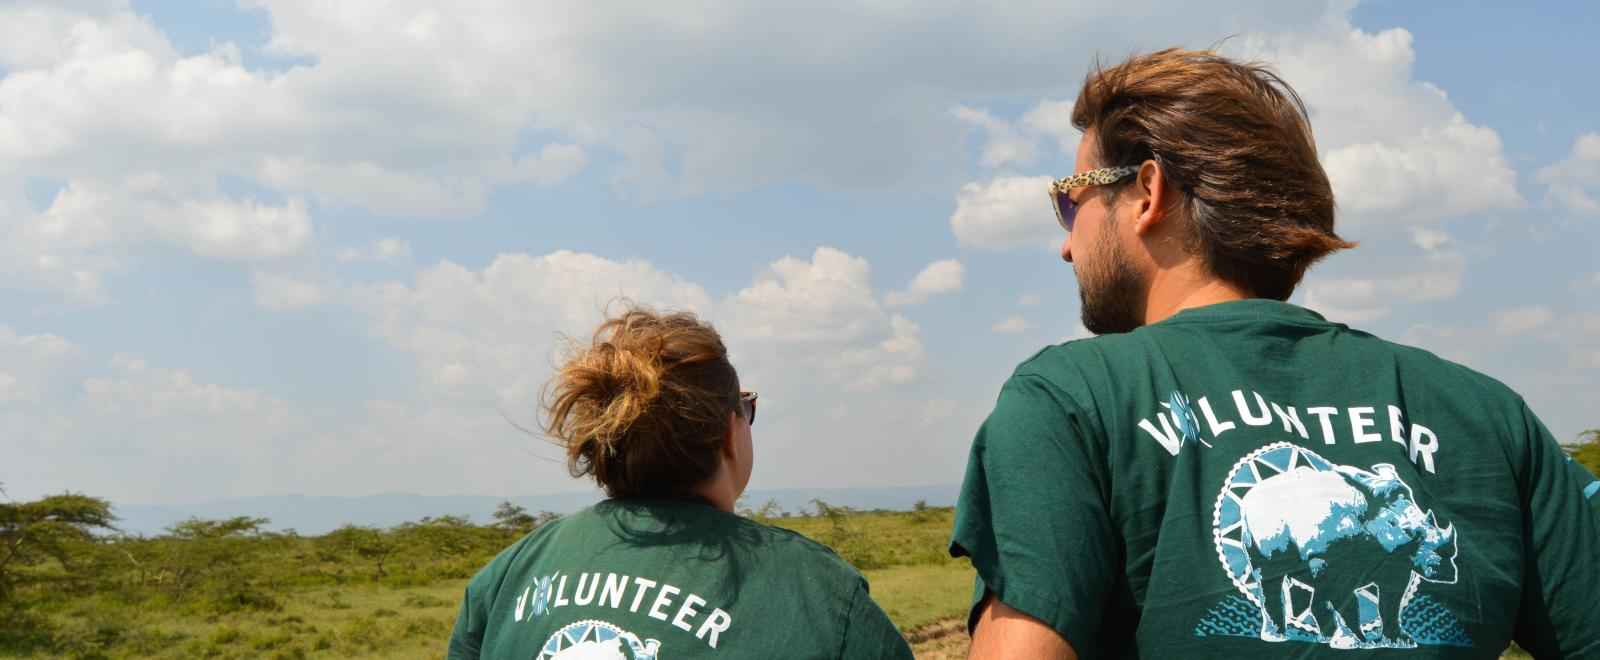 Volunteers in Kenya on a Conservation project